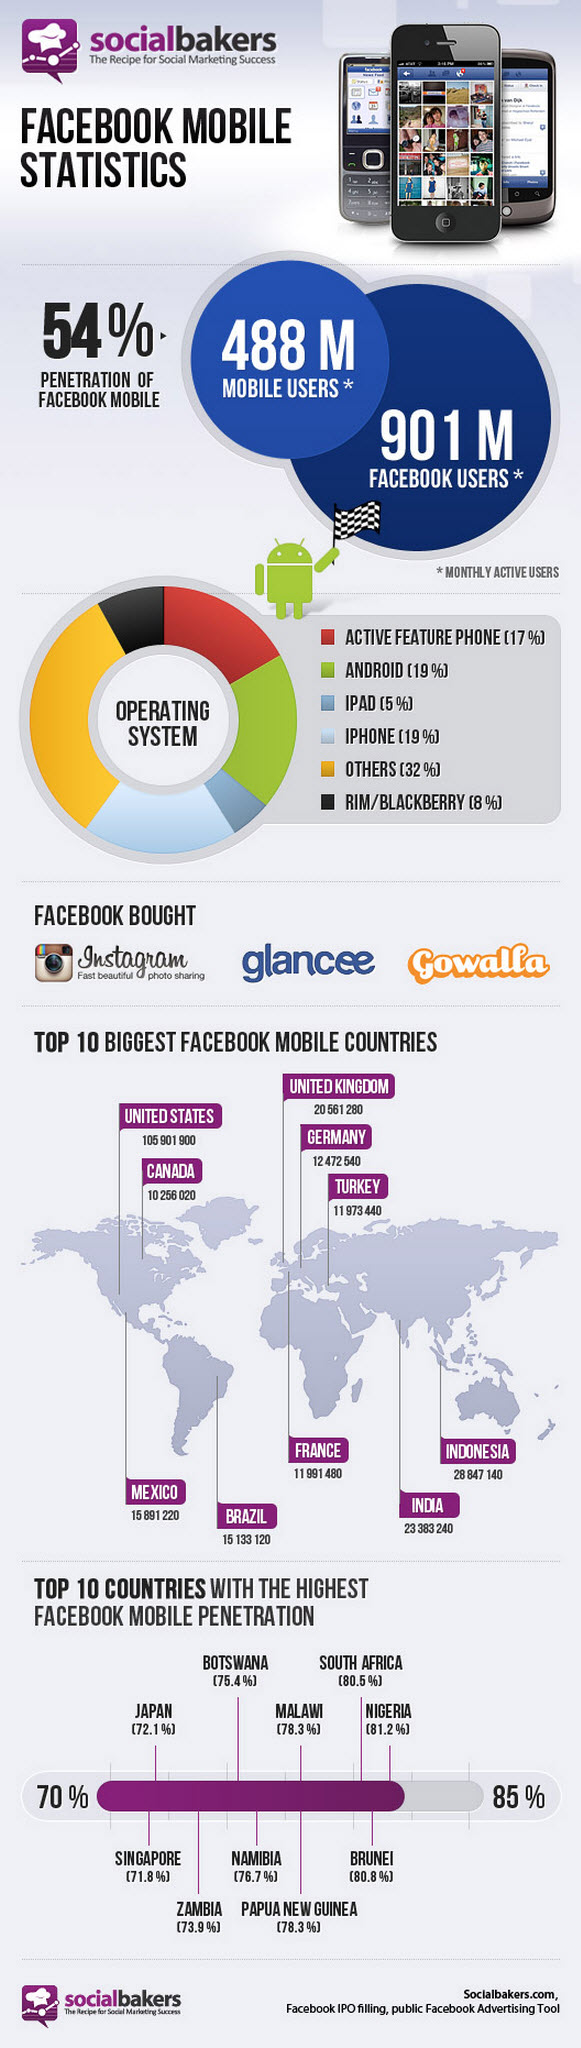 http://www.jeffbullas.com/wp-content/uploads/2012/05/Facebook-and-Mobile-Growth-Infographic.jpg